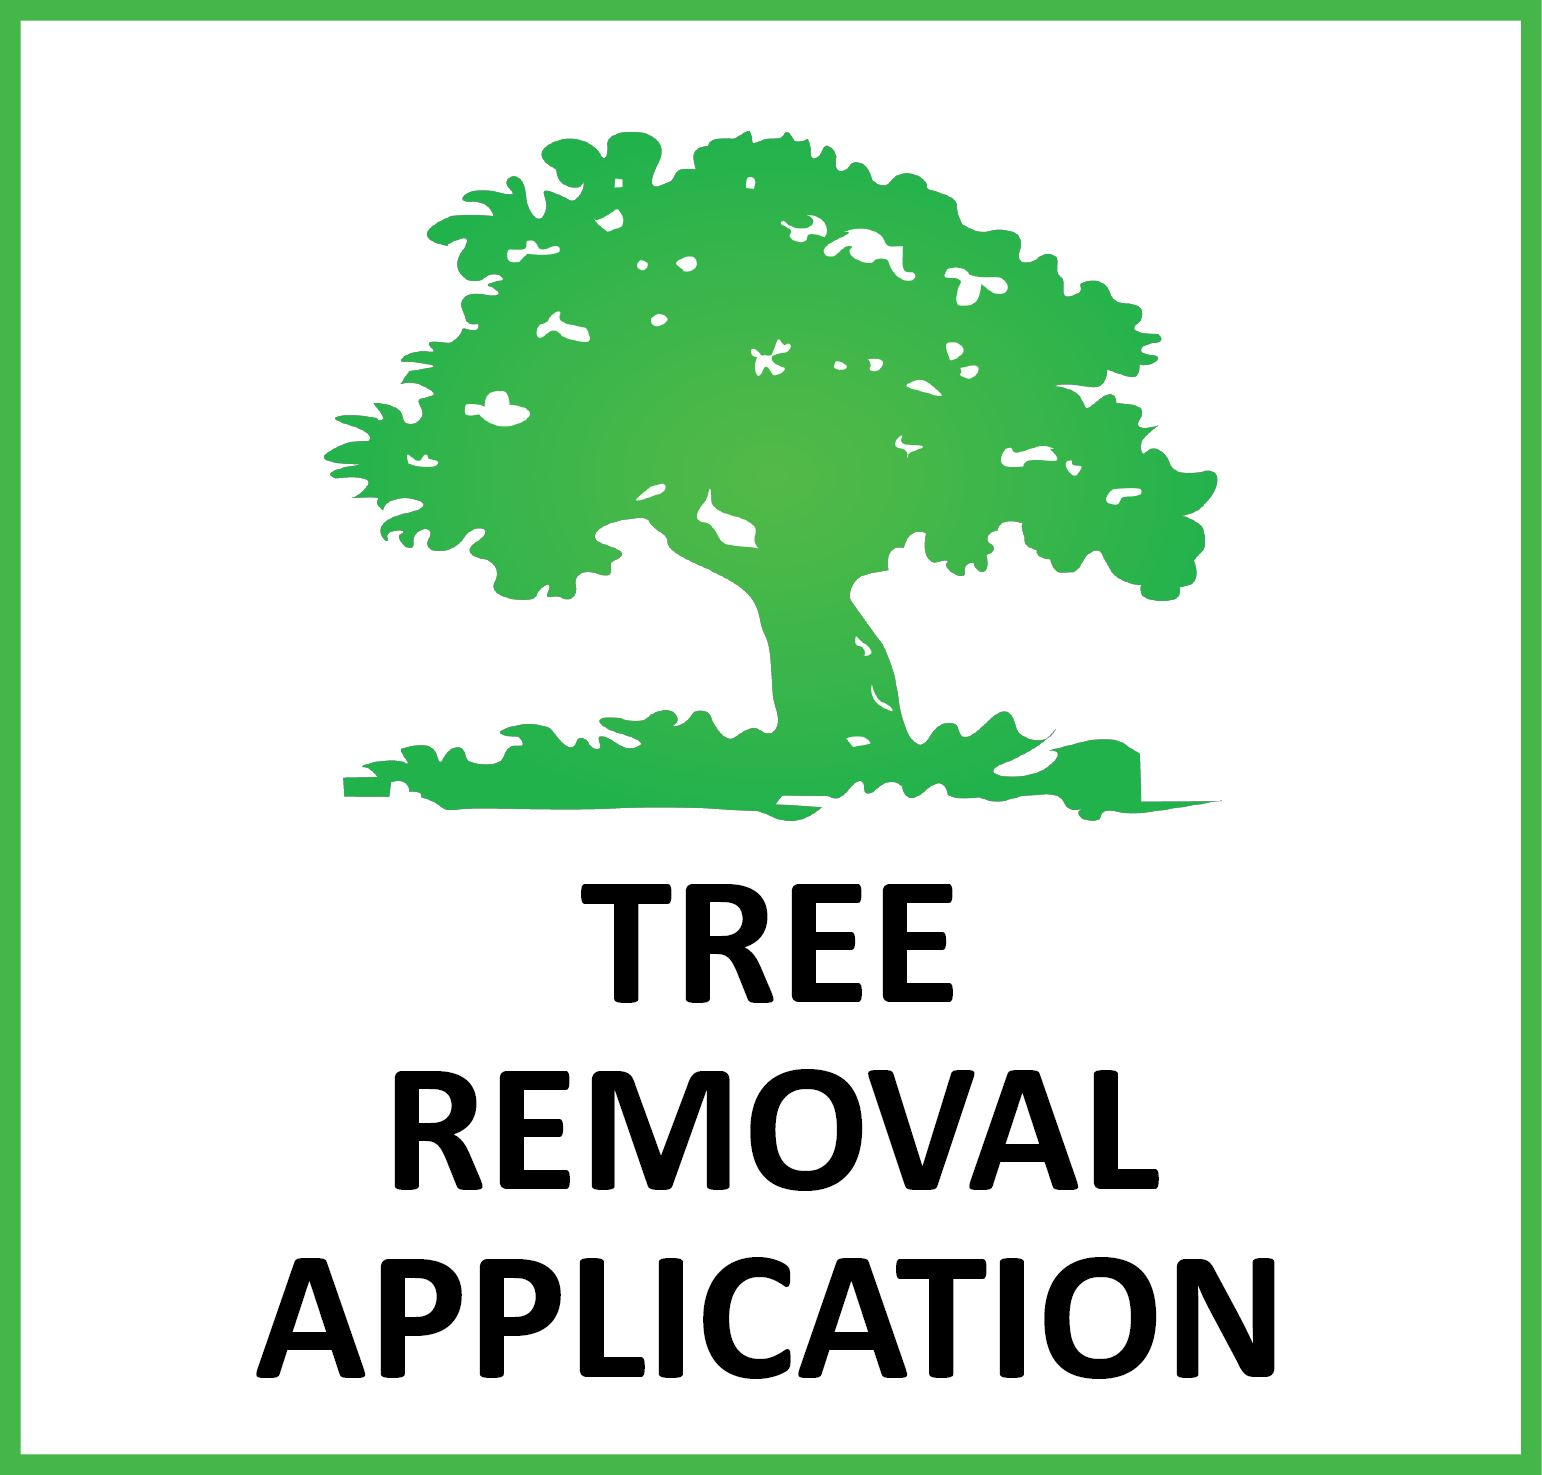 Tree Removal Application